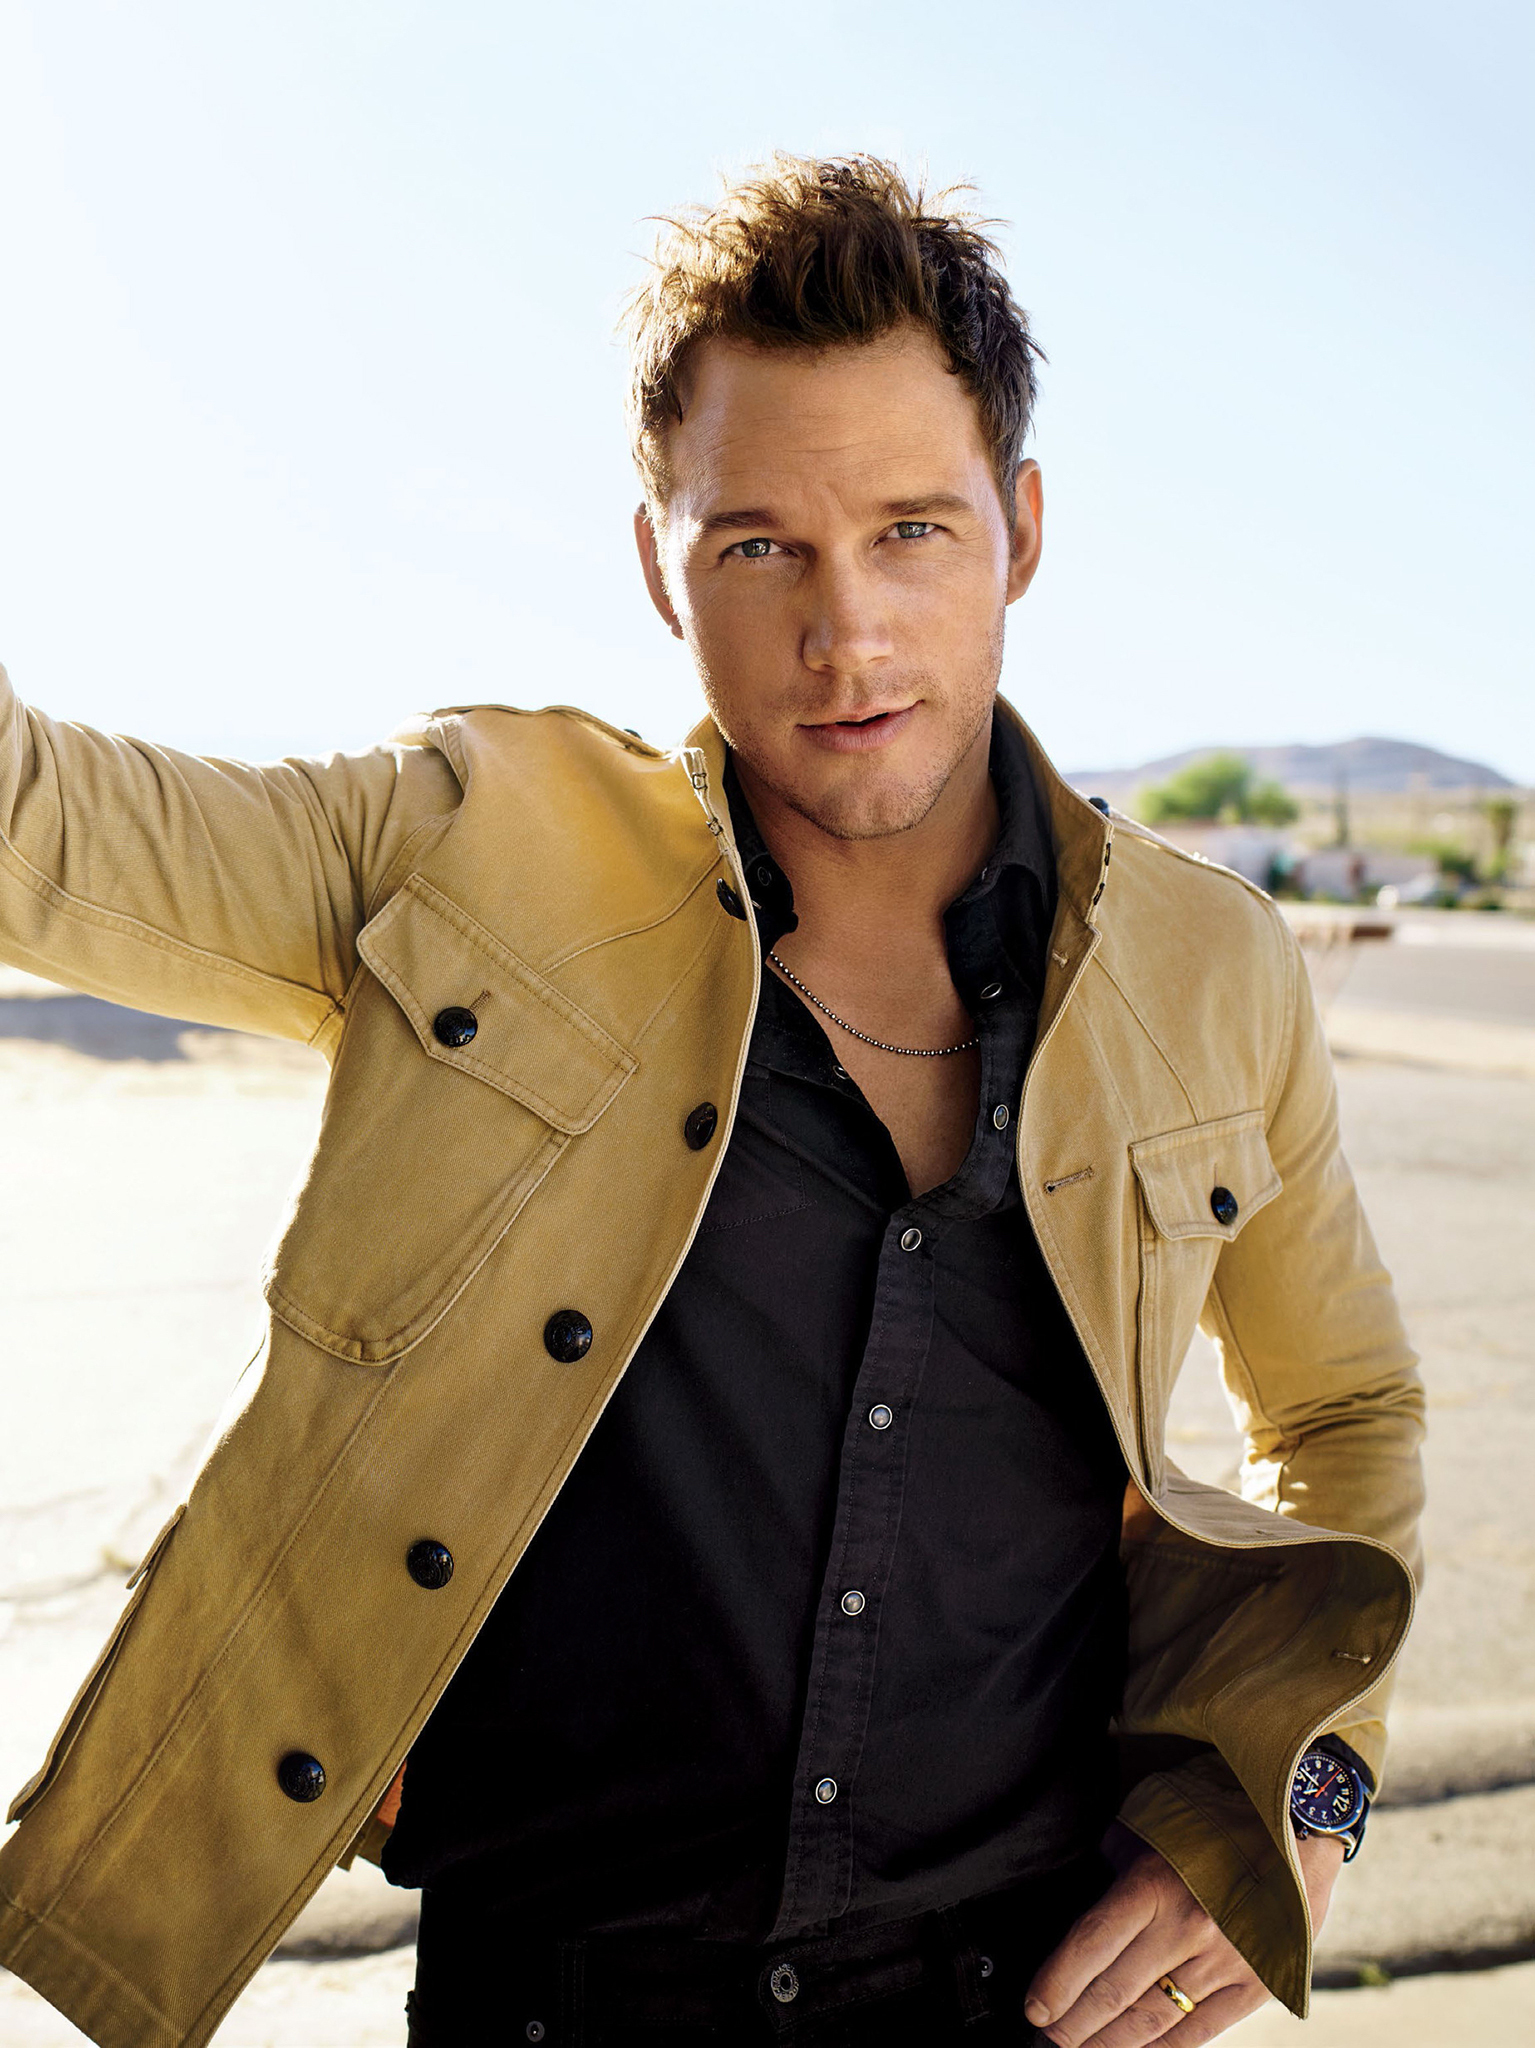 Chris Pratt photo #663745